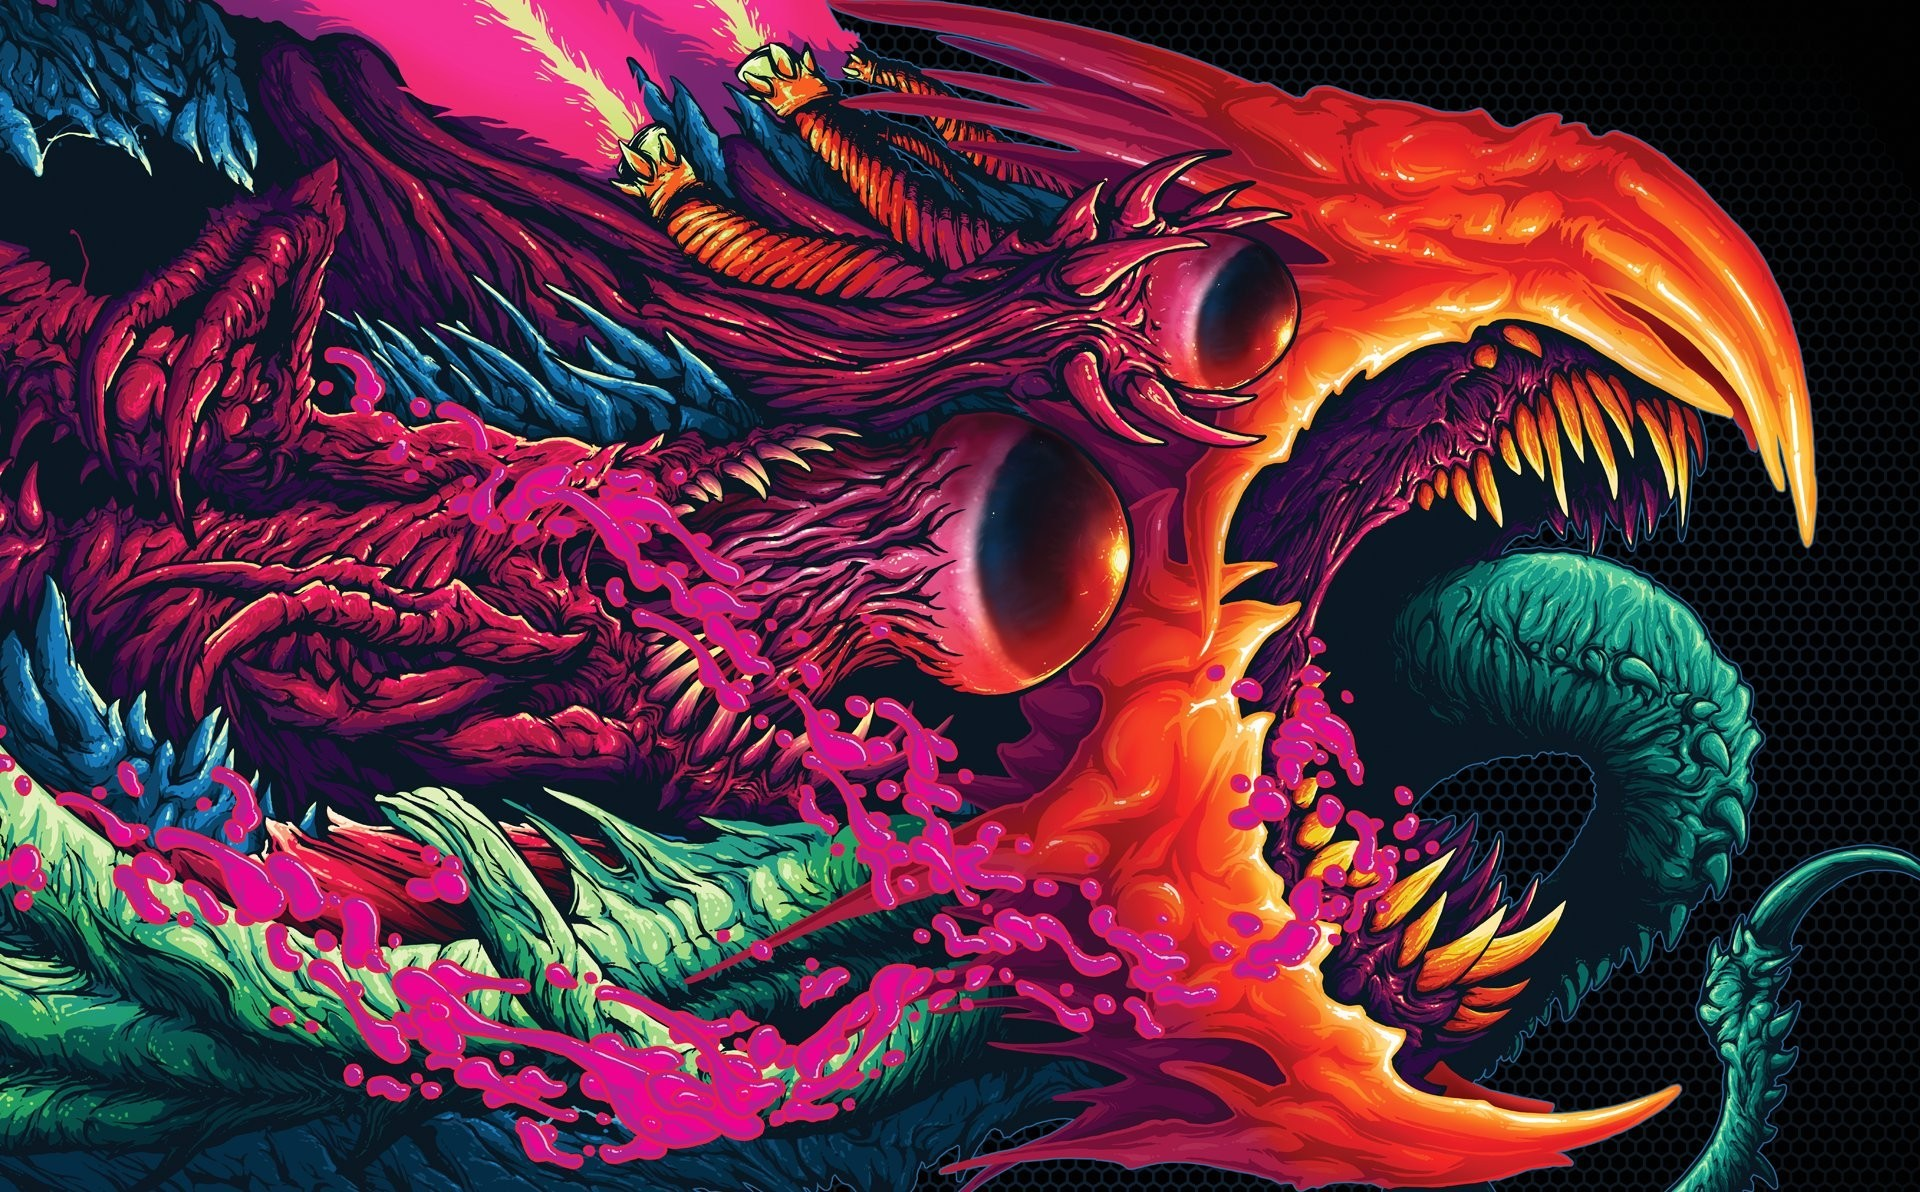 1920x1192 Yükle ()Awp Hyper Beast Wallpaper (79 images)Awp Hyper Beast  Wallpaper.